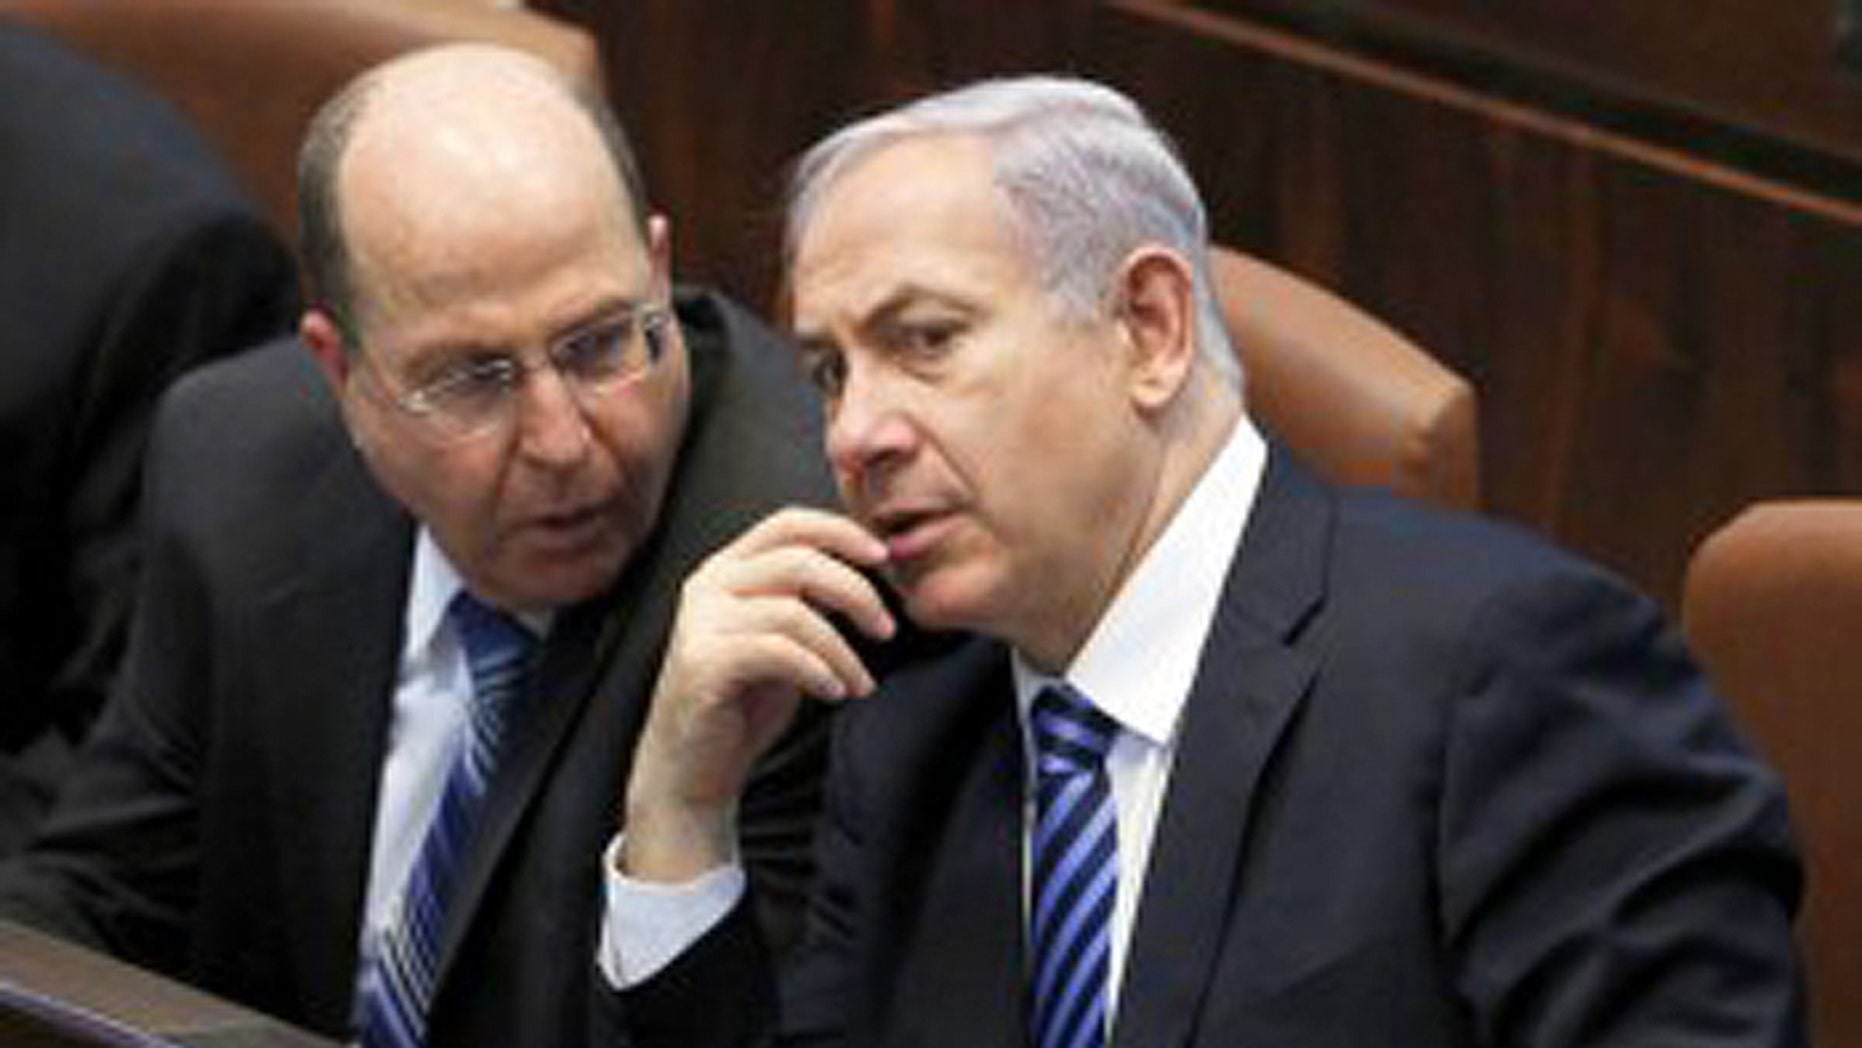 """What do they really think? Israeli Defense Minister Moshe Ya'alon, (l.), shown here with Prime Minister Benjamin Netanyahu, blasted U.S. Secretary of State John Kerry in what were supposedly """"private comments."""" (Reuters)"""